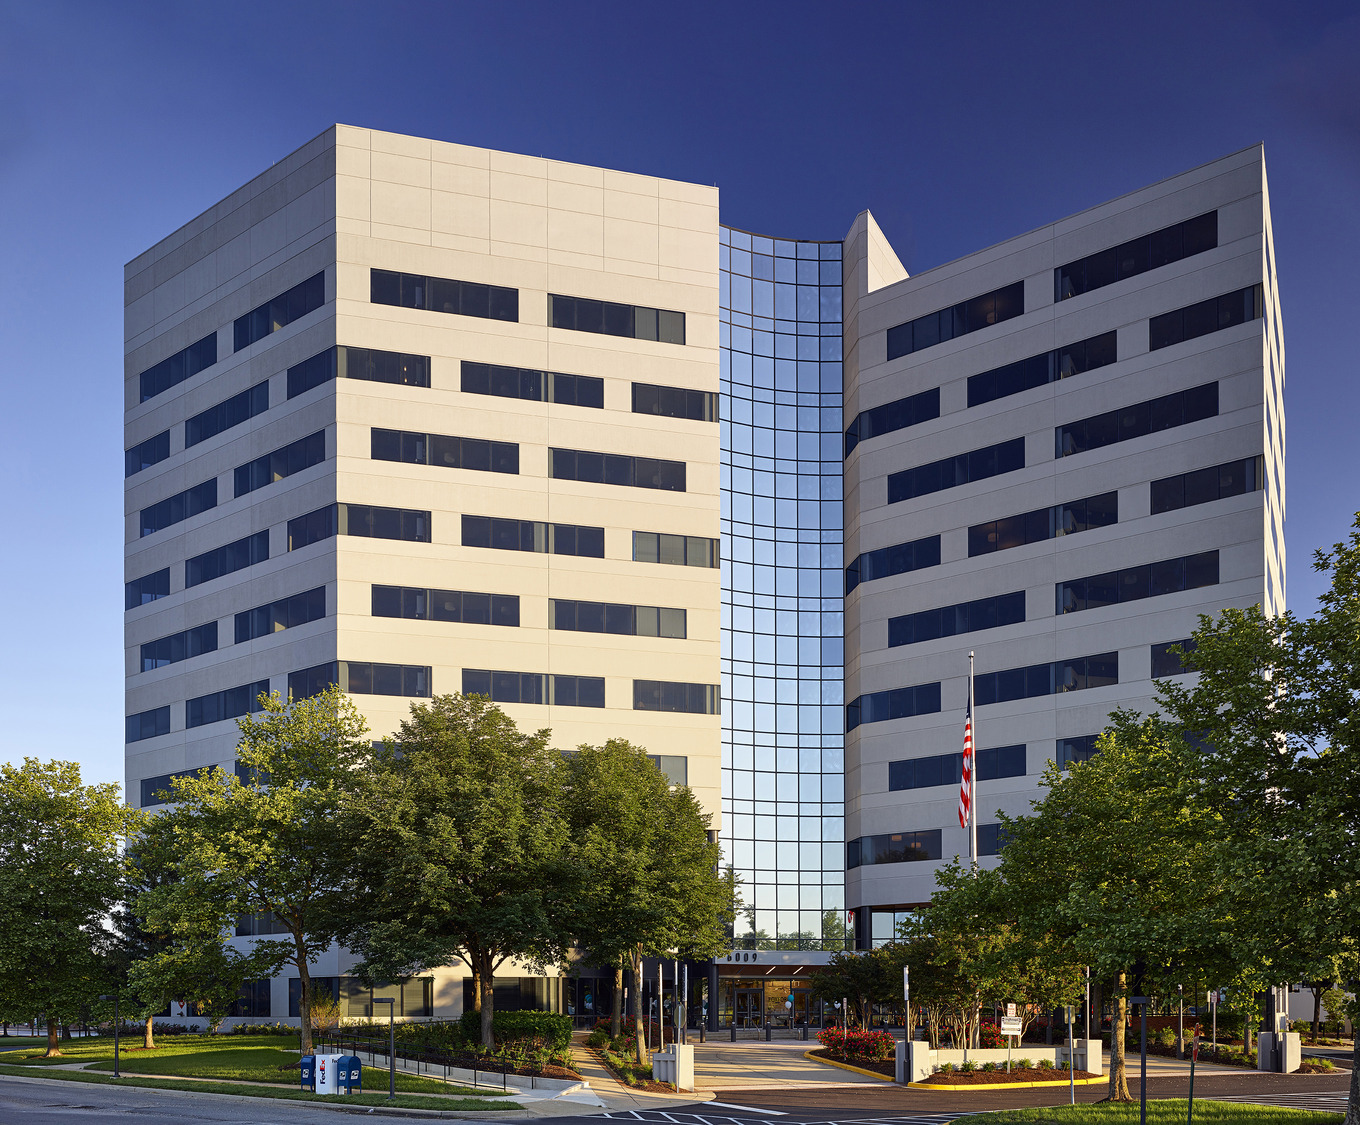 CBG builds The Oxford, a 187 Luxury Apartments Adapted from Former 10-Story Office Building in Oxon Hill, MD - Image #1